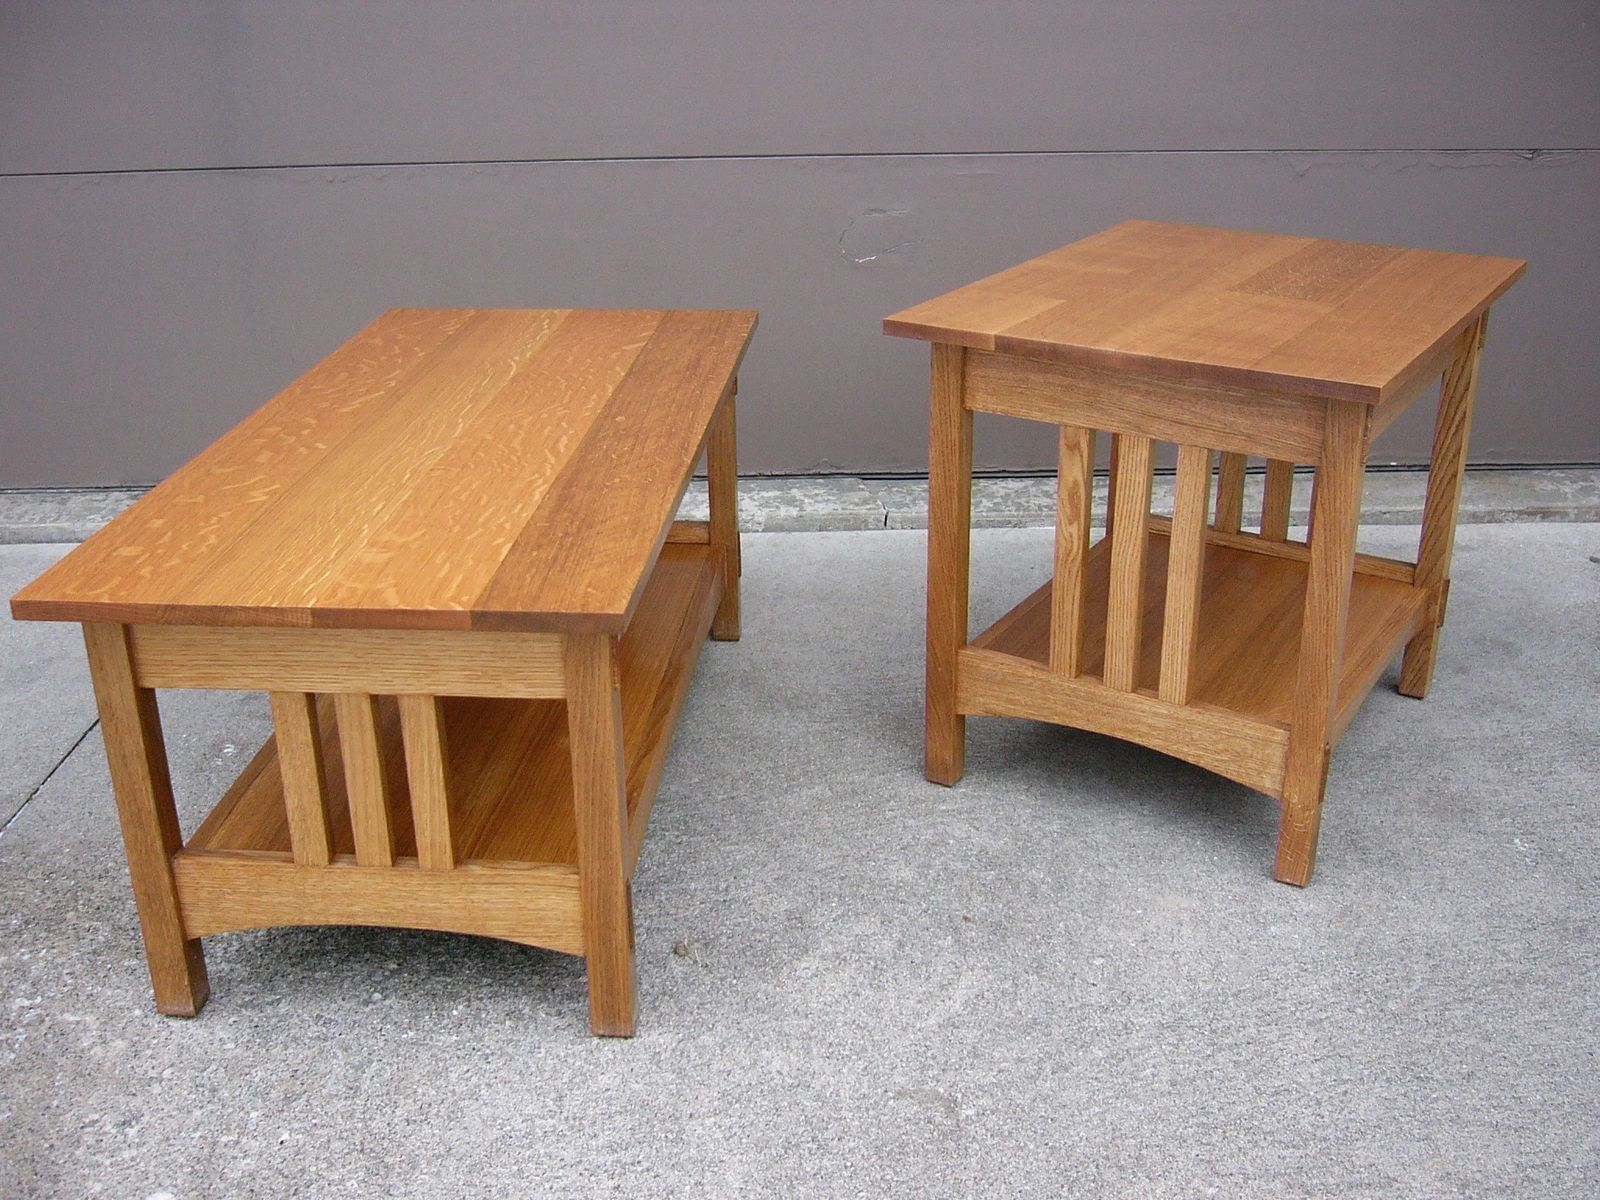 Handmade Quartersawn Oak Mission Style Coffee Table And End Table